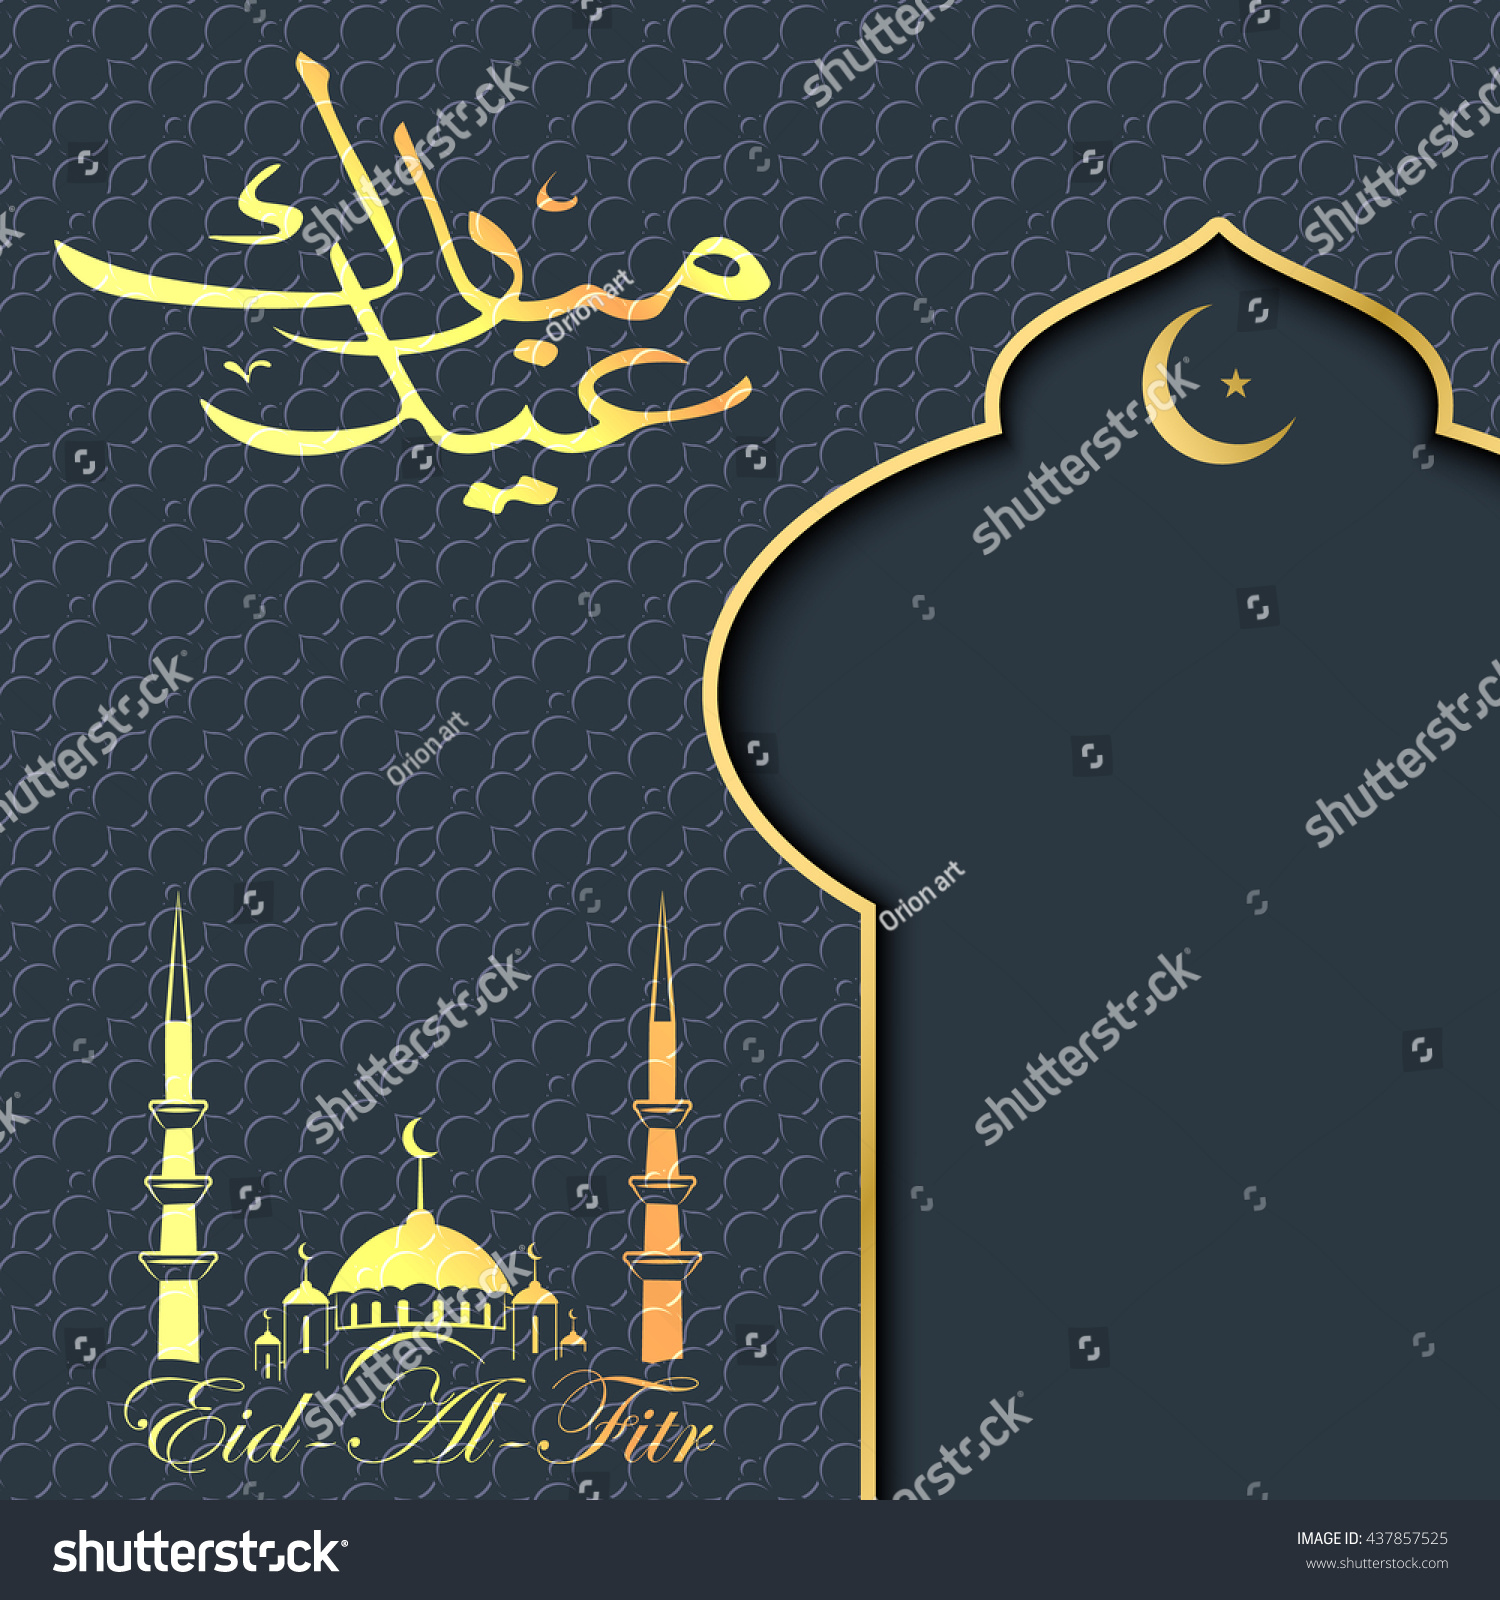 Calligraphy arabic text eid al fitr stock vector 437857525 calligraphy of arabic text eid al fitr feast of breaking the fast kristyandbryce Choice Image